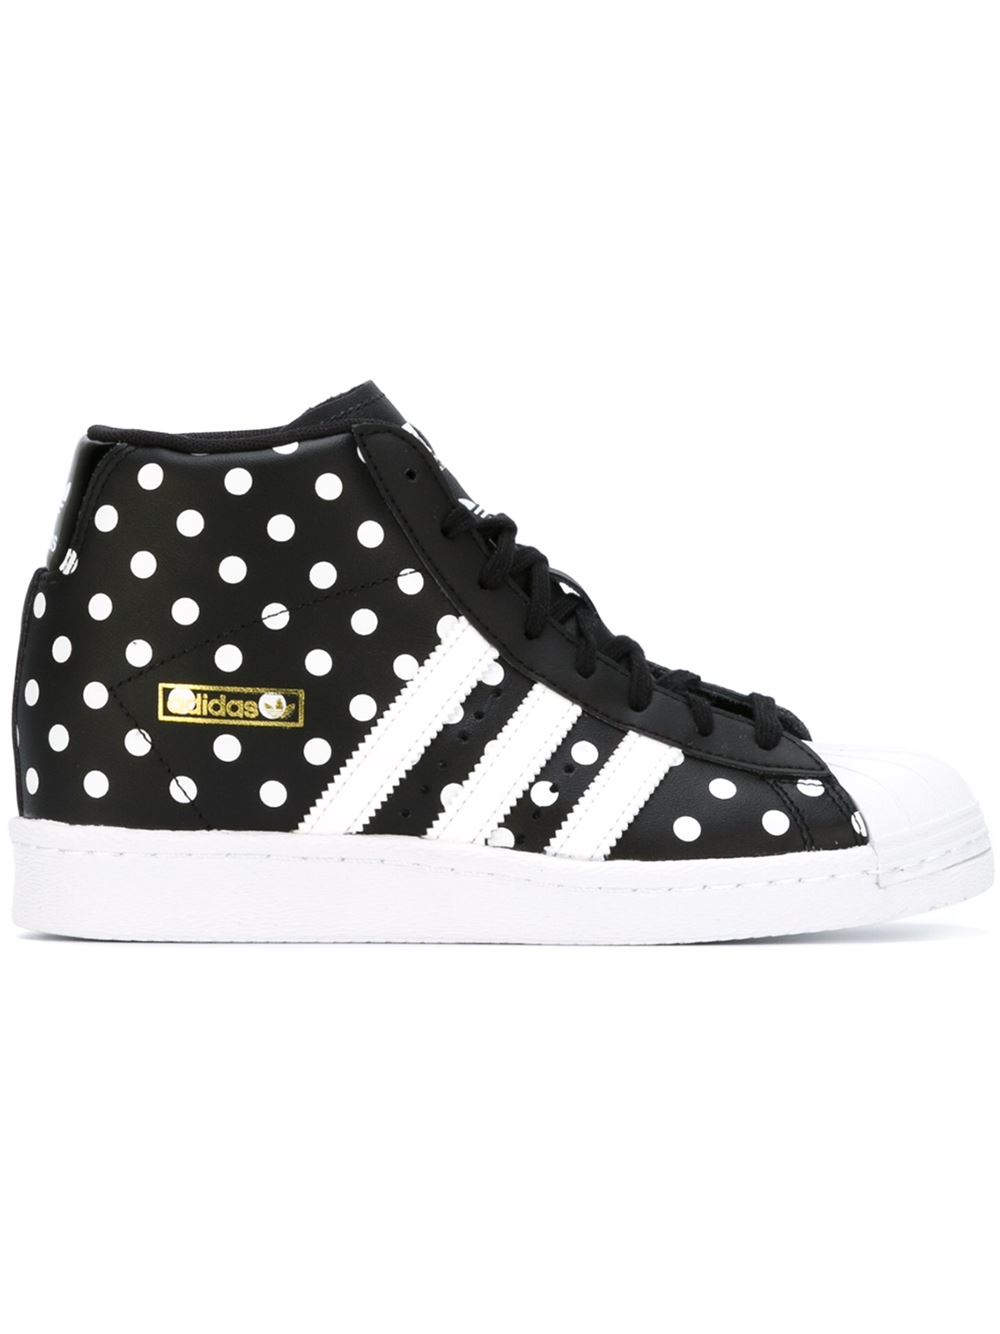 check out 526c2 f6a64 adidas  superstar Up  Hi-top Sneakers in Black - Lyst